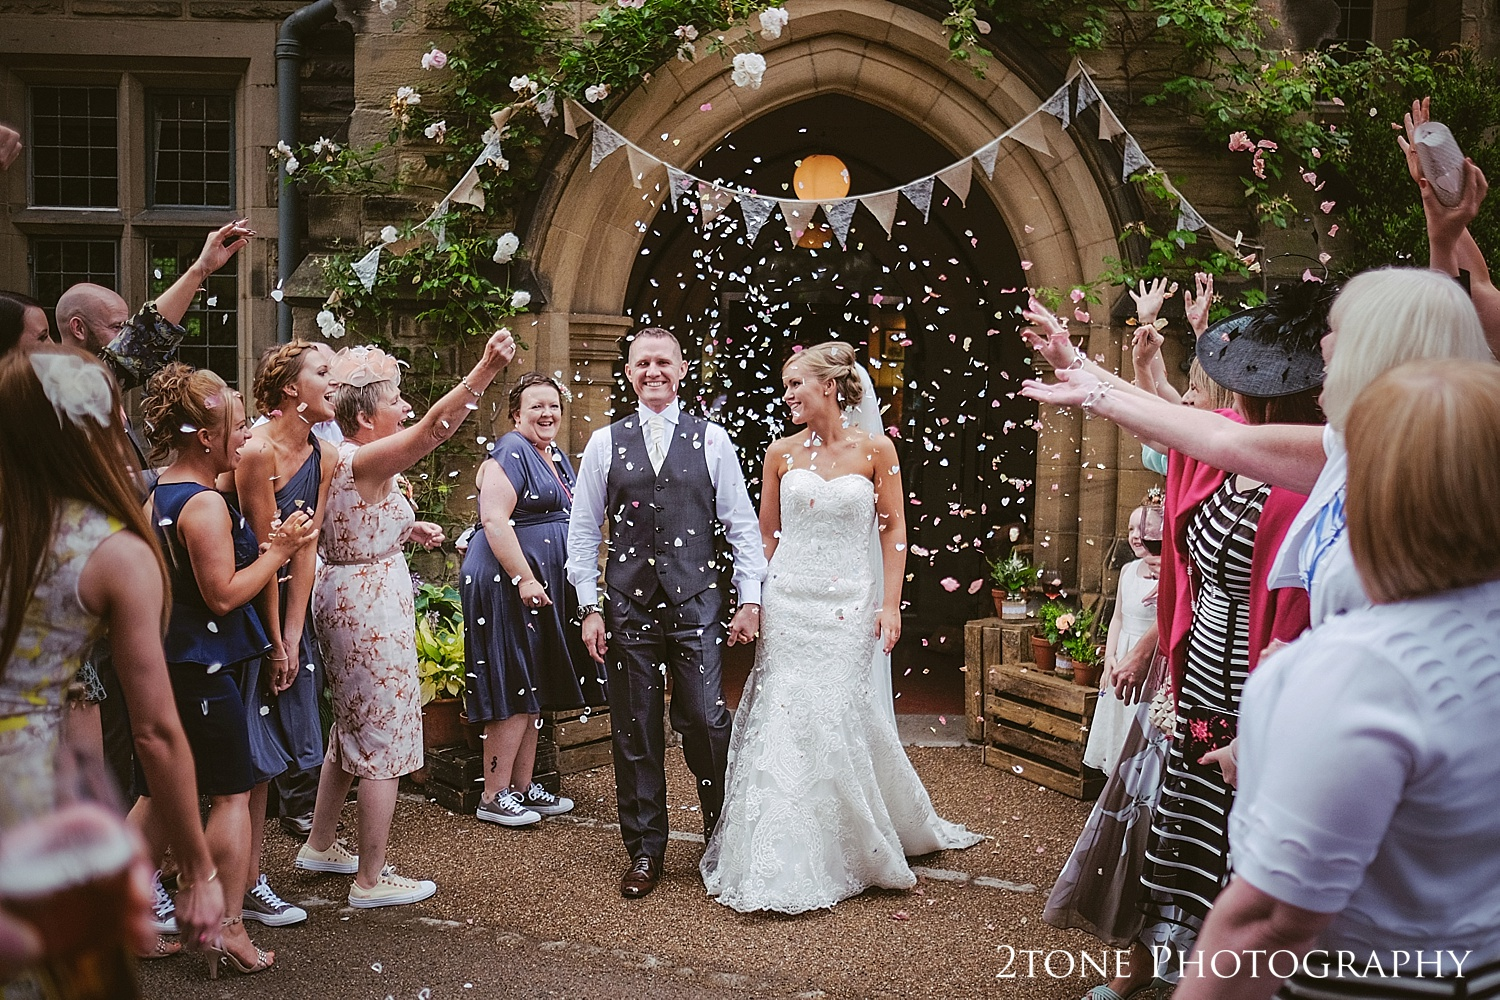 Wedding confetti at Jesmond Dene House in Newcastle by 2tone Photography www.2tonephotography.co.uk